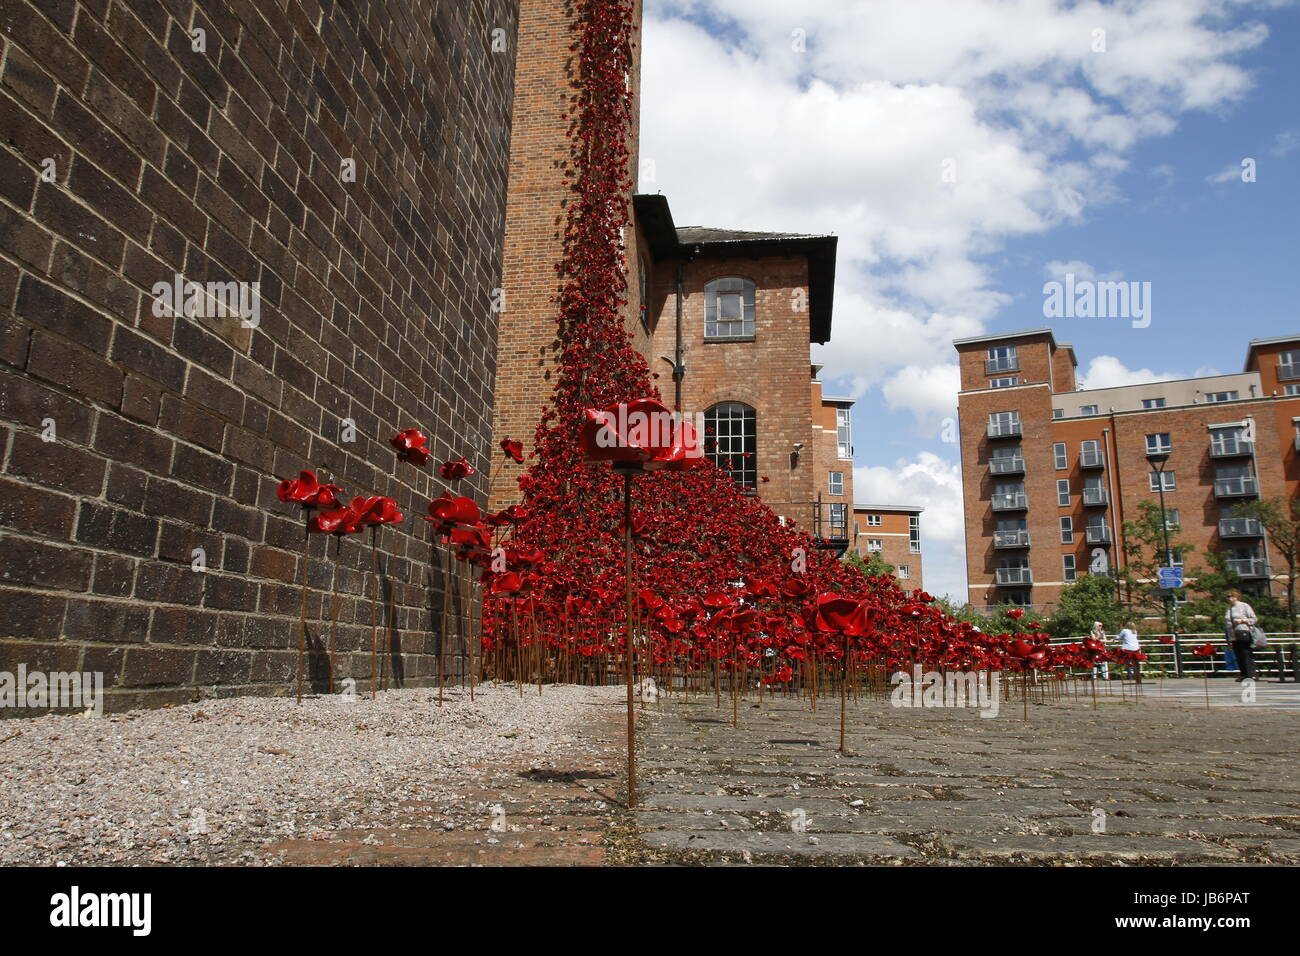 London, UK. 9th Jun, 2017. First full public display of the Weeping Window poppy display at Derby Silk Mill Tower. - Stock Image